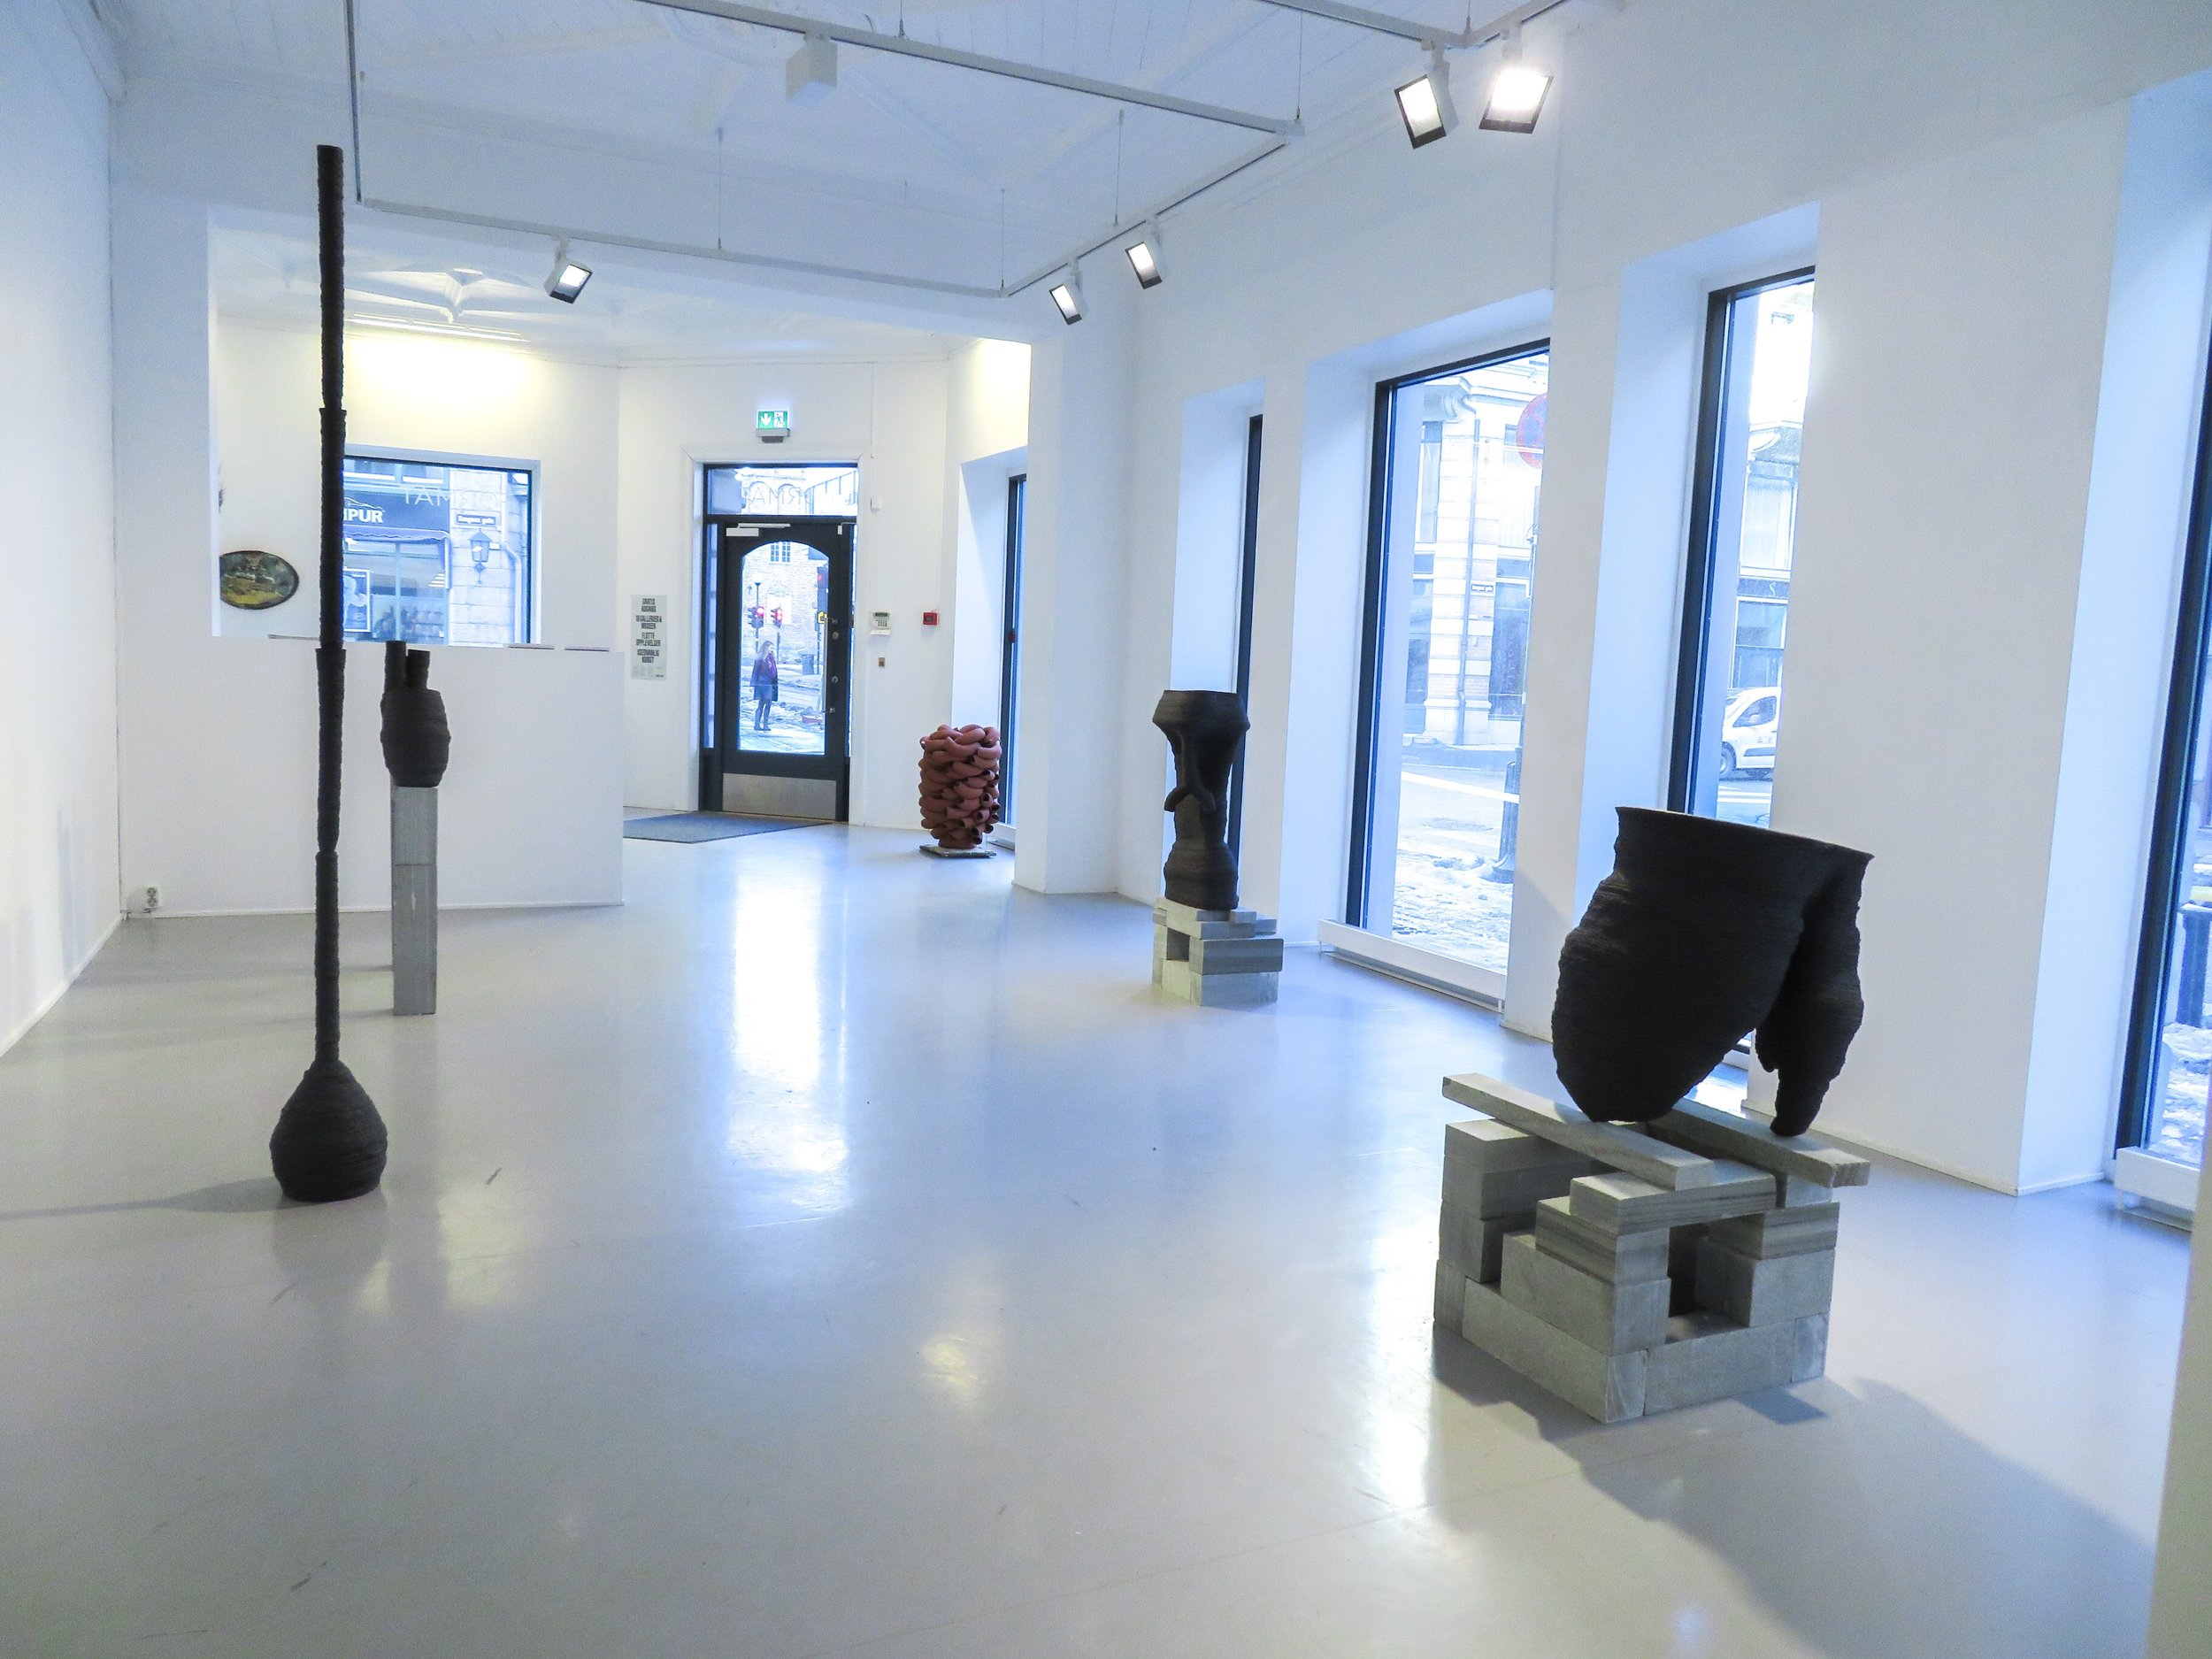 Installation view   Photo credit: Courtesy of Galleri Format Oslo